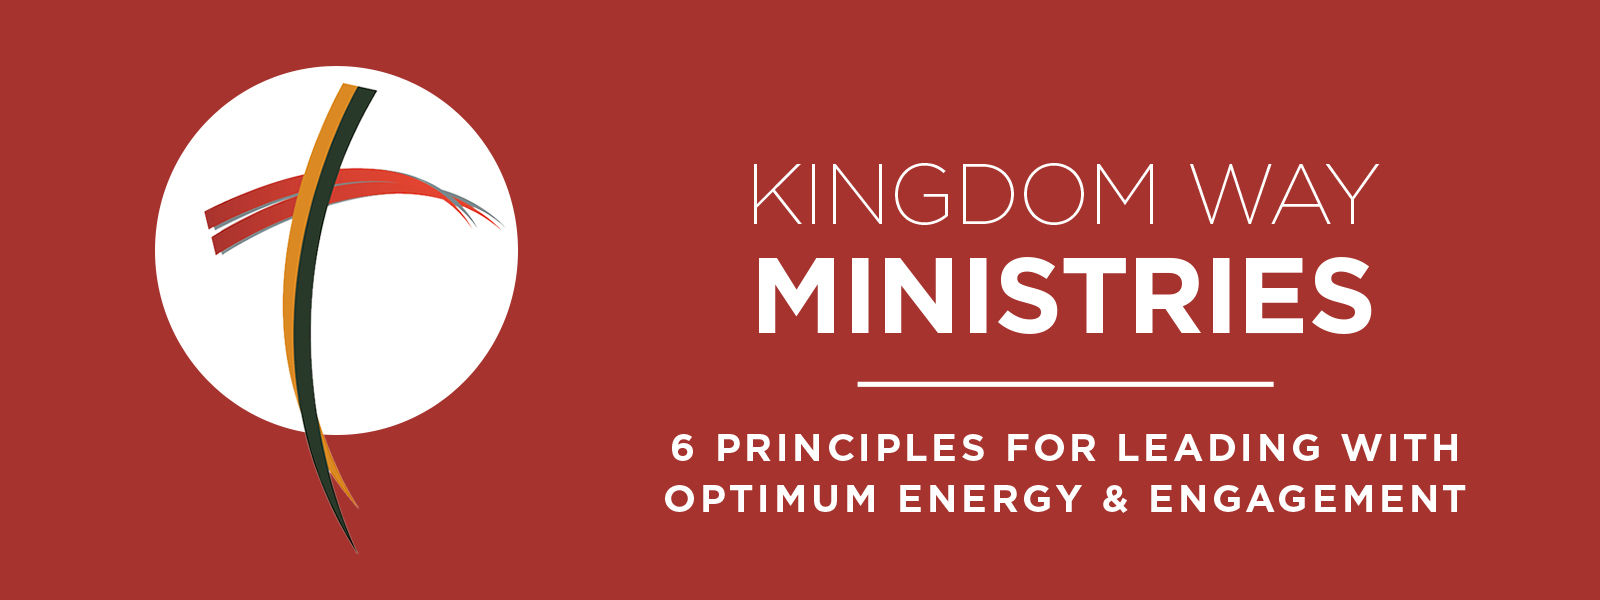 6 Principles for Leading With Optimum Energy & Engagement